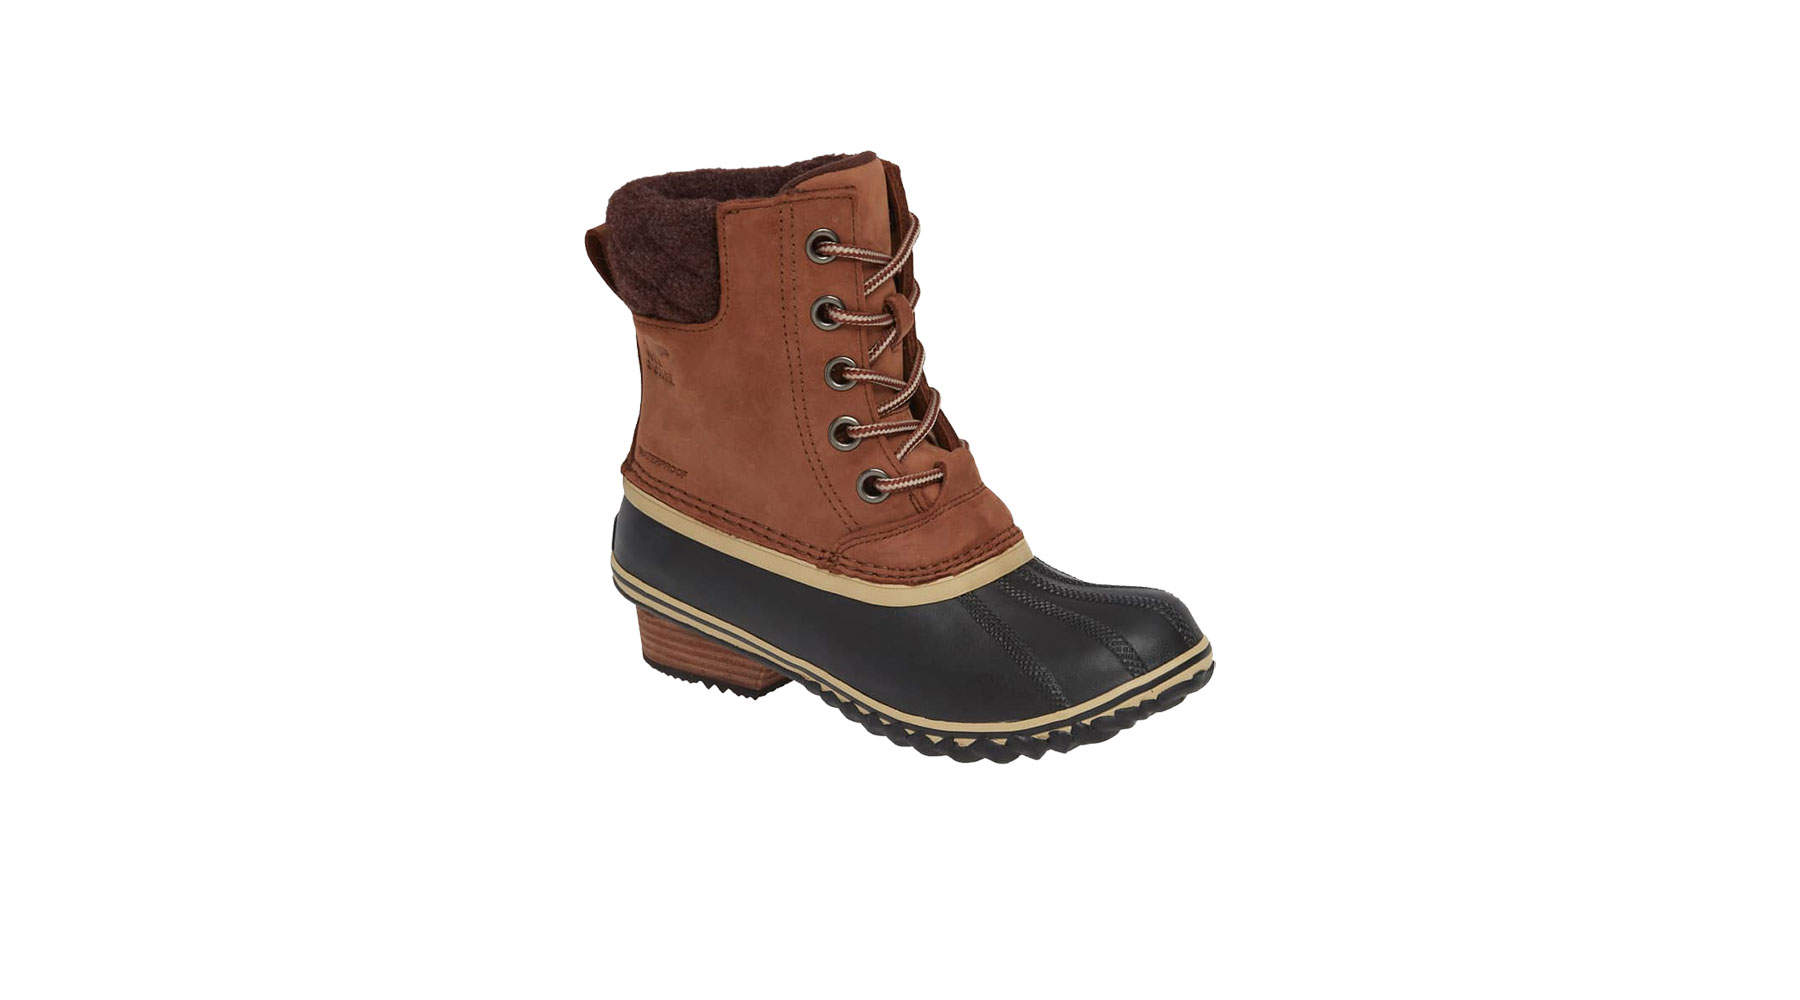 Sorel Slimpack Waterproof Boots